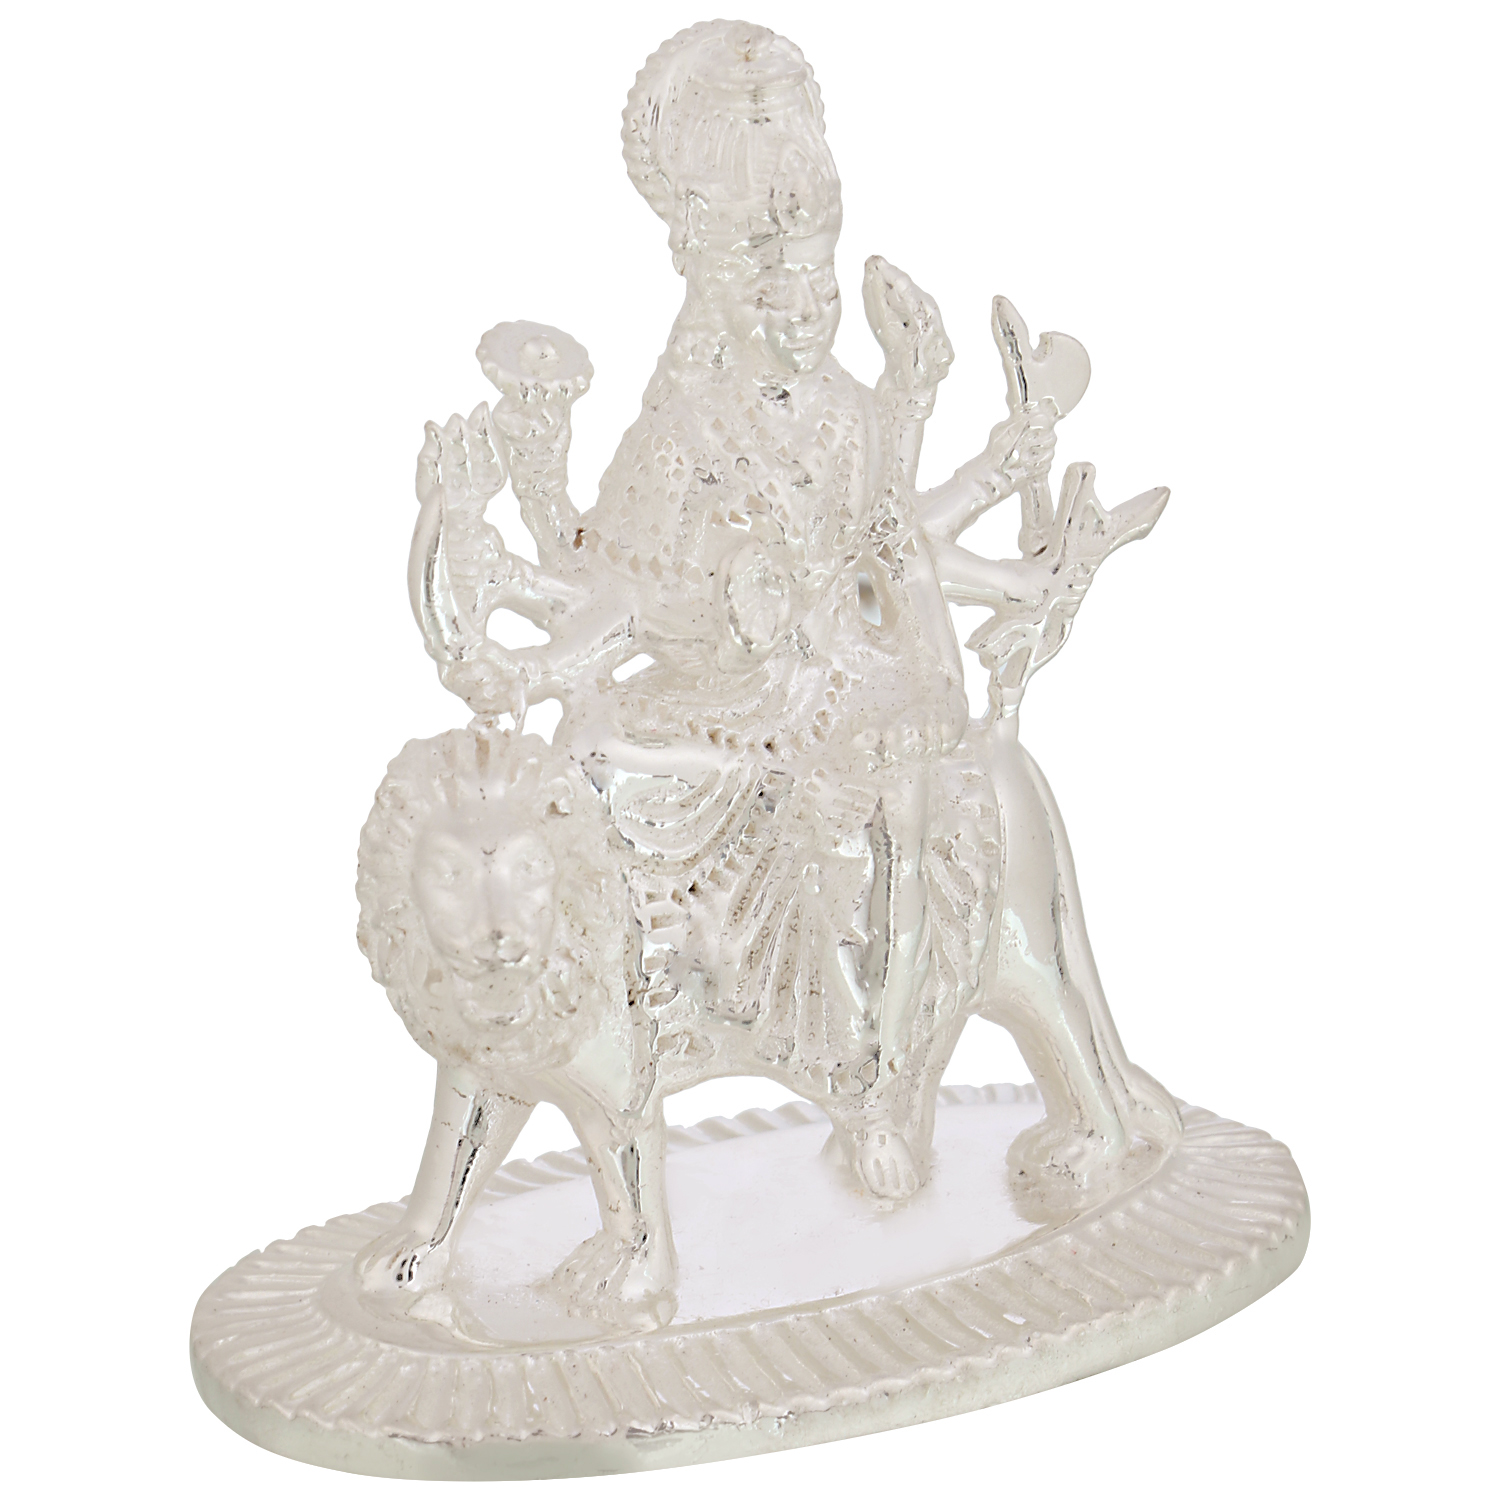 Durga Maa in Silver by Osasbazaar Right